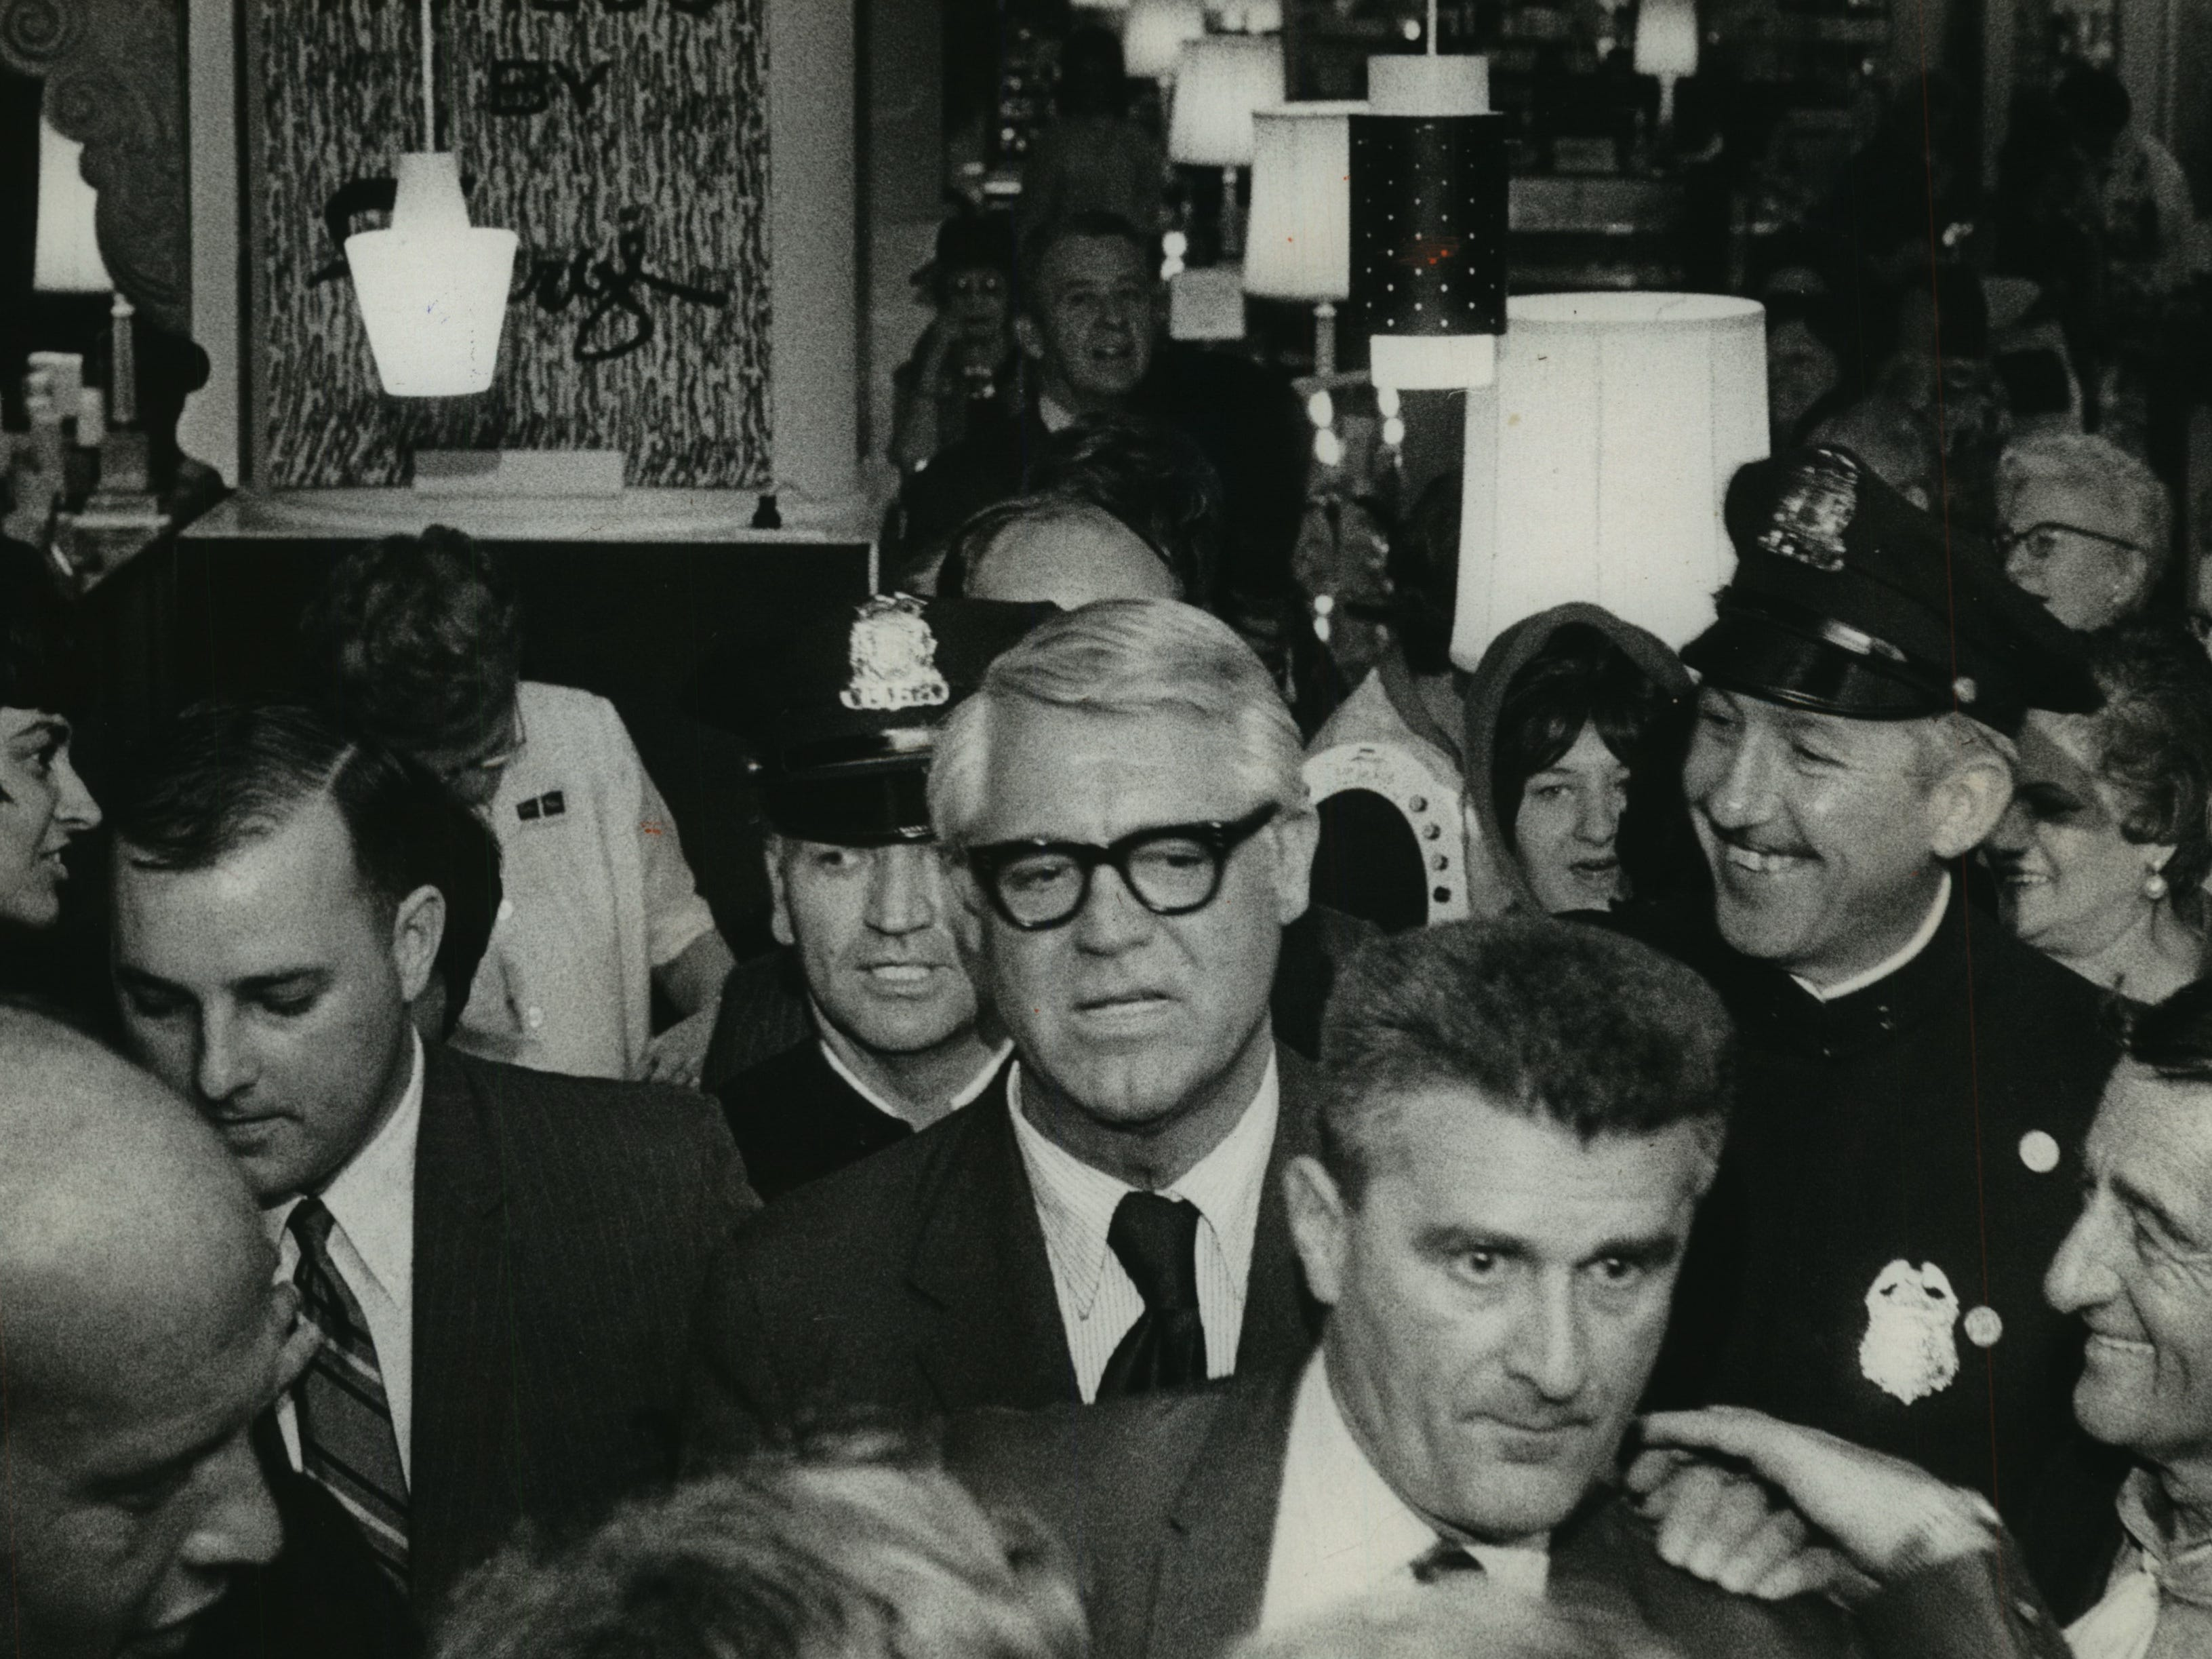 Cary Grant was swarmed by the crowd when he visited Milwaukee and the Downtown Boston Store, November 2, 1969.